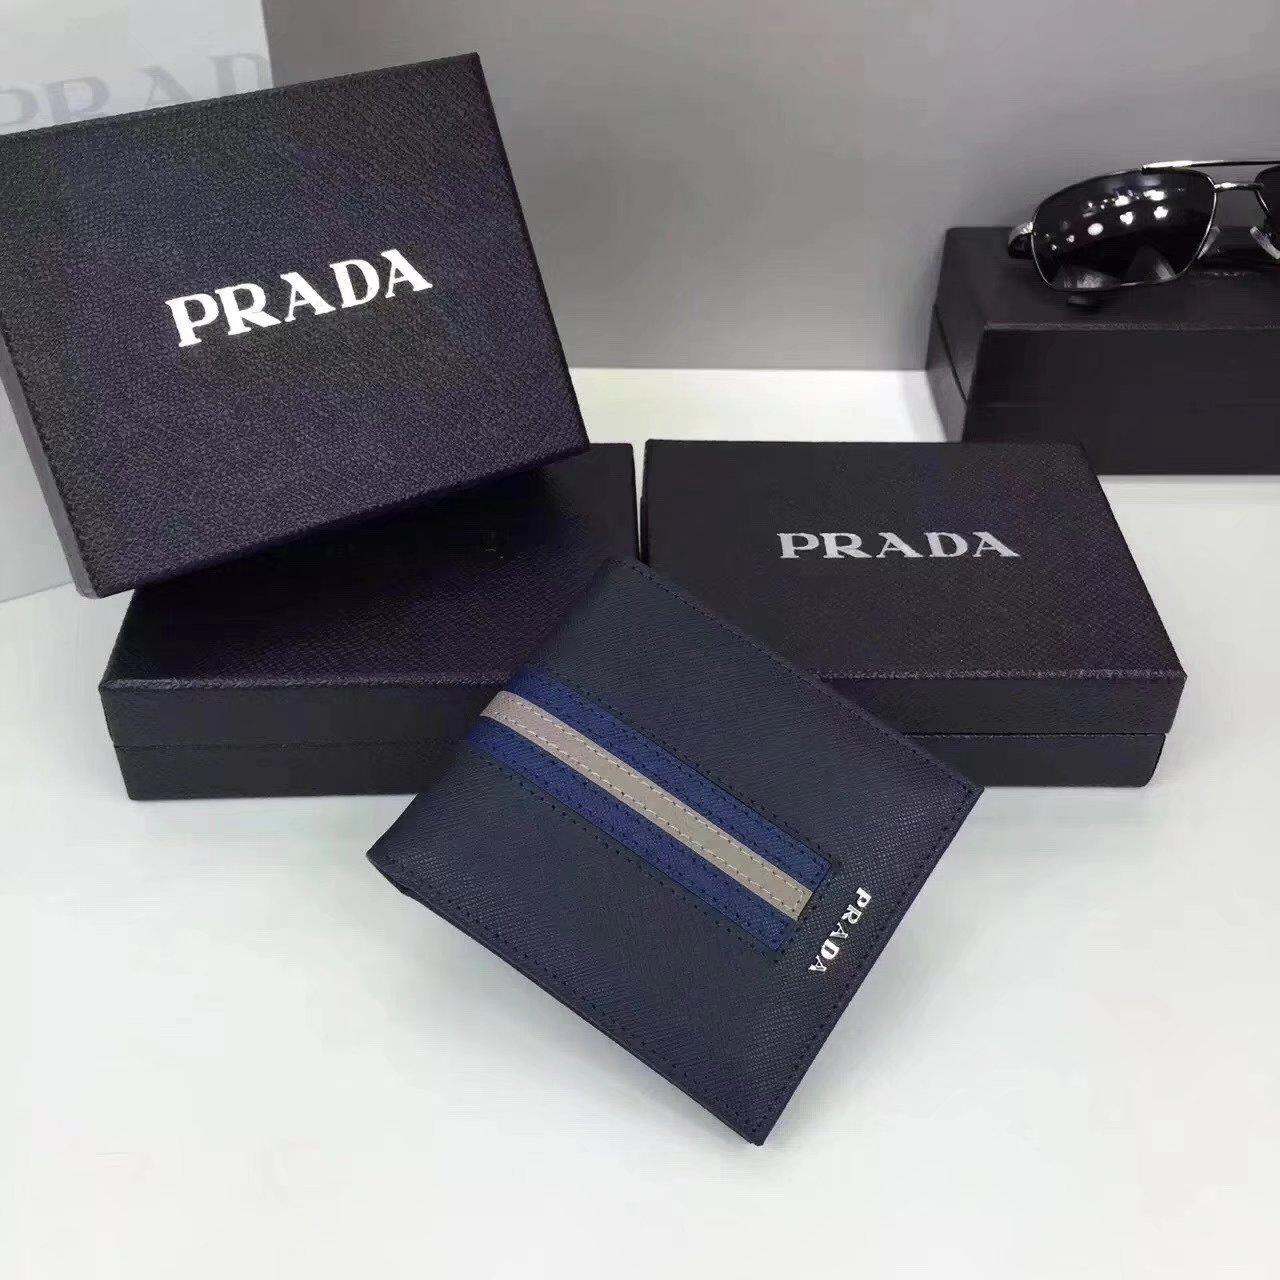 Prada F0002 Men Saffiano Leather Wallet with Intarsia Contrasting Color Blue